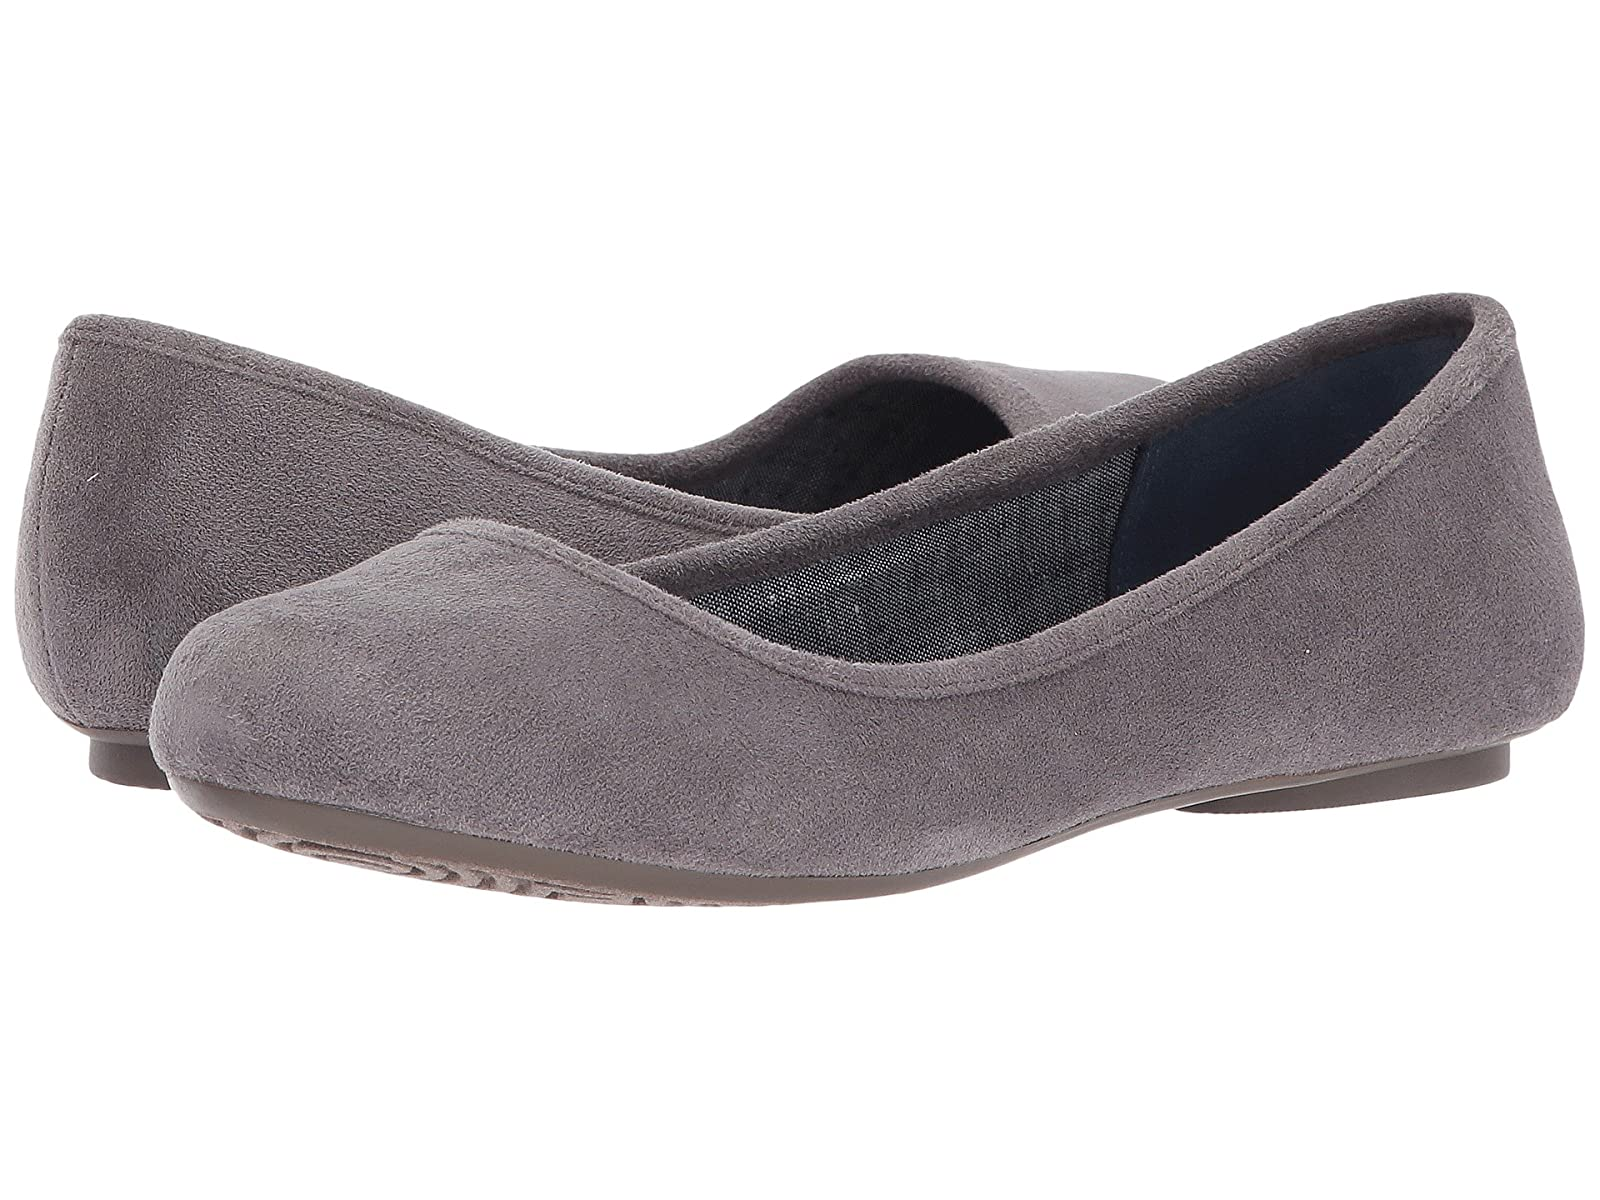 Dr. Scholl's FriendlyCheap and distinctive eye-catching shoes